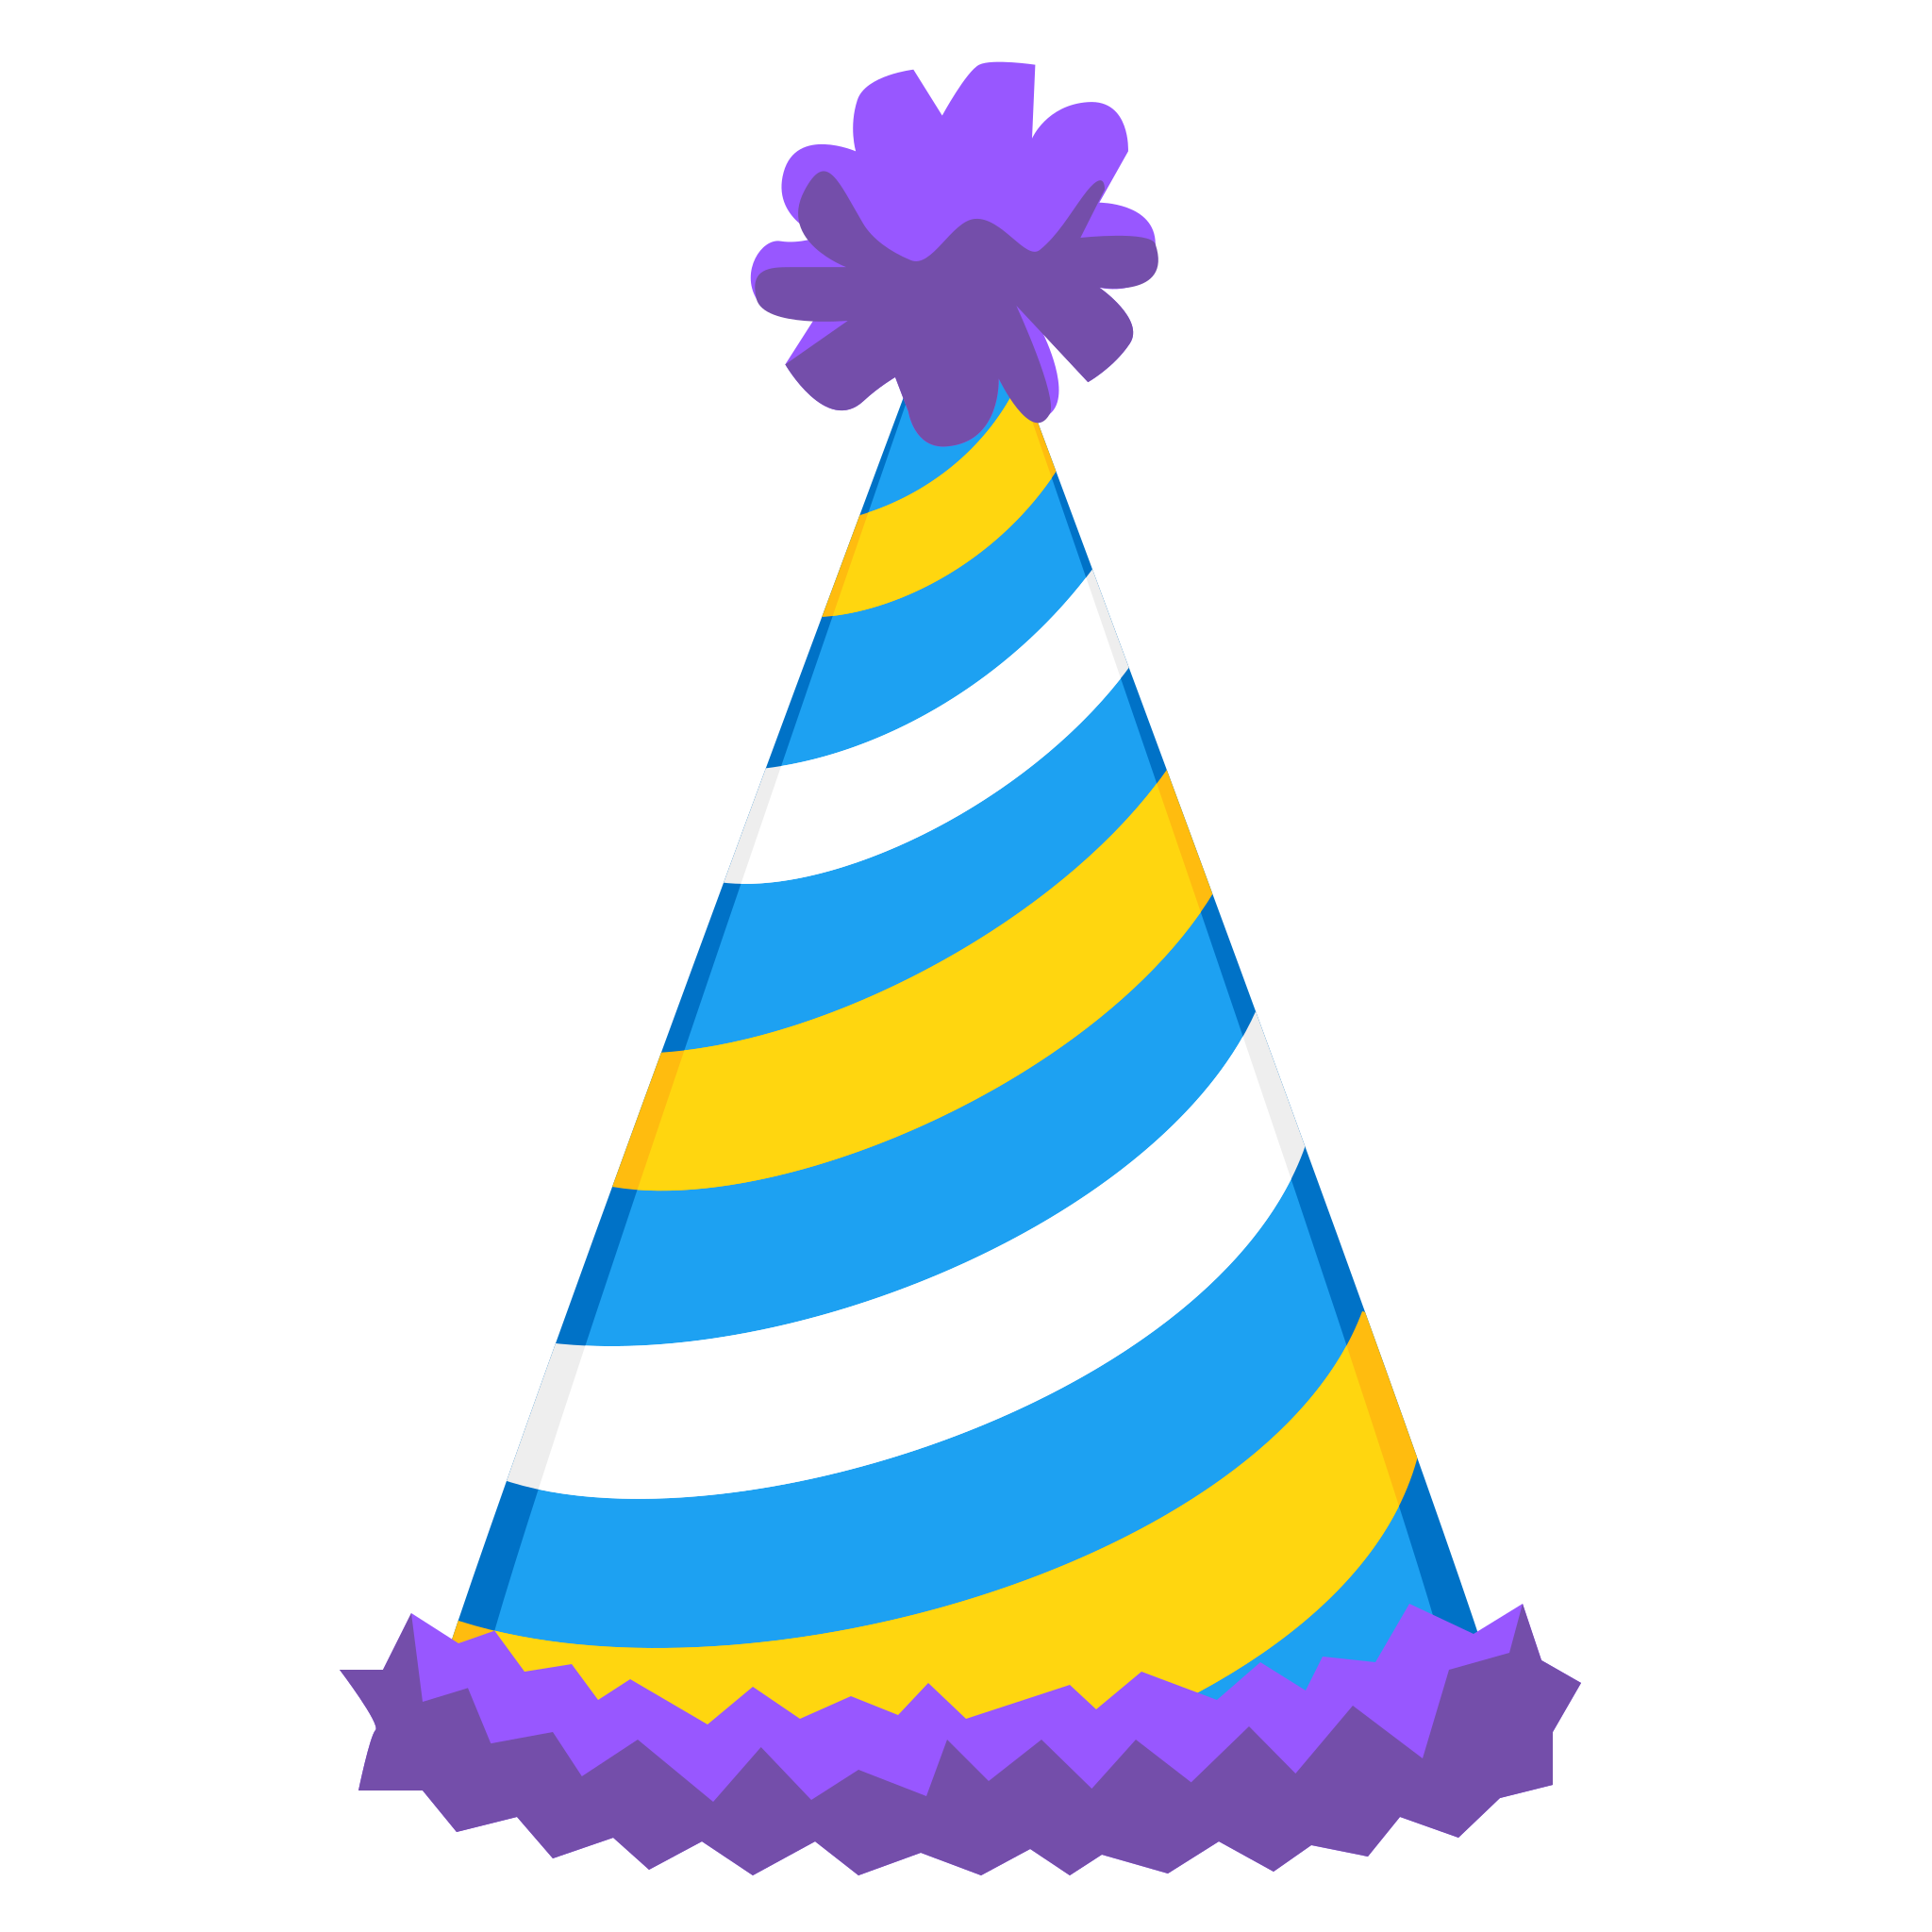 2048x2048 Sticker Timeline Birthday Hat